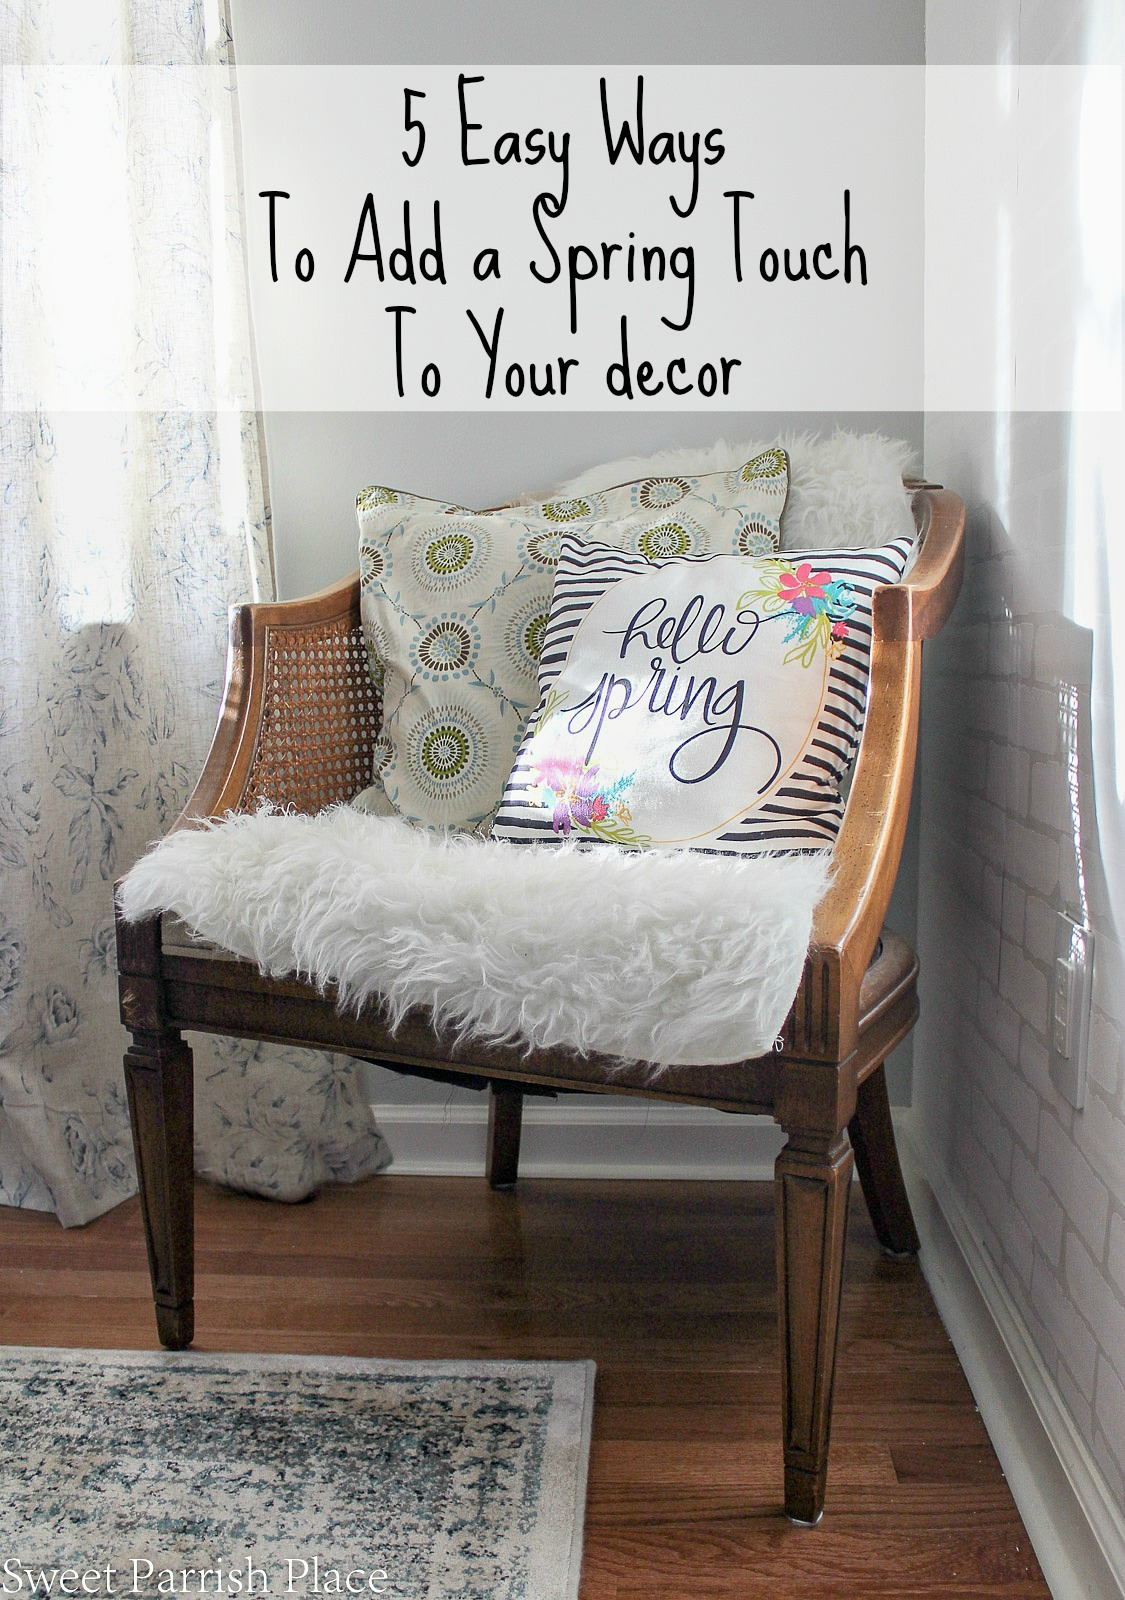 5 easy ways to add a spring touch to your decor